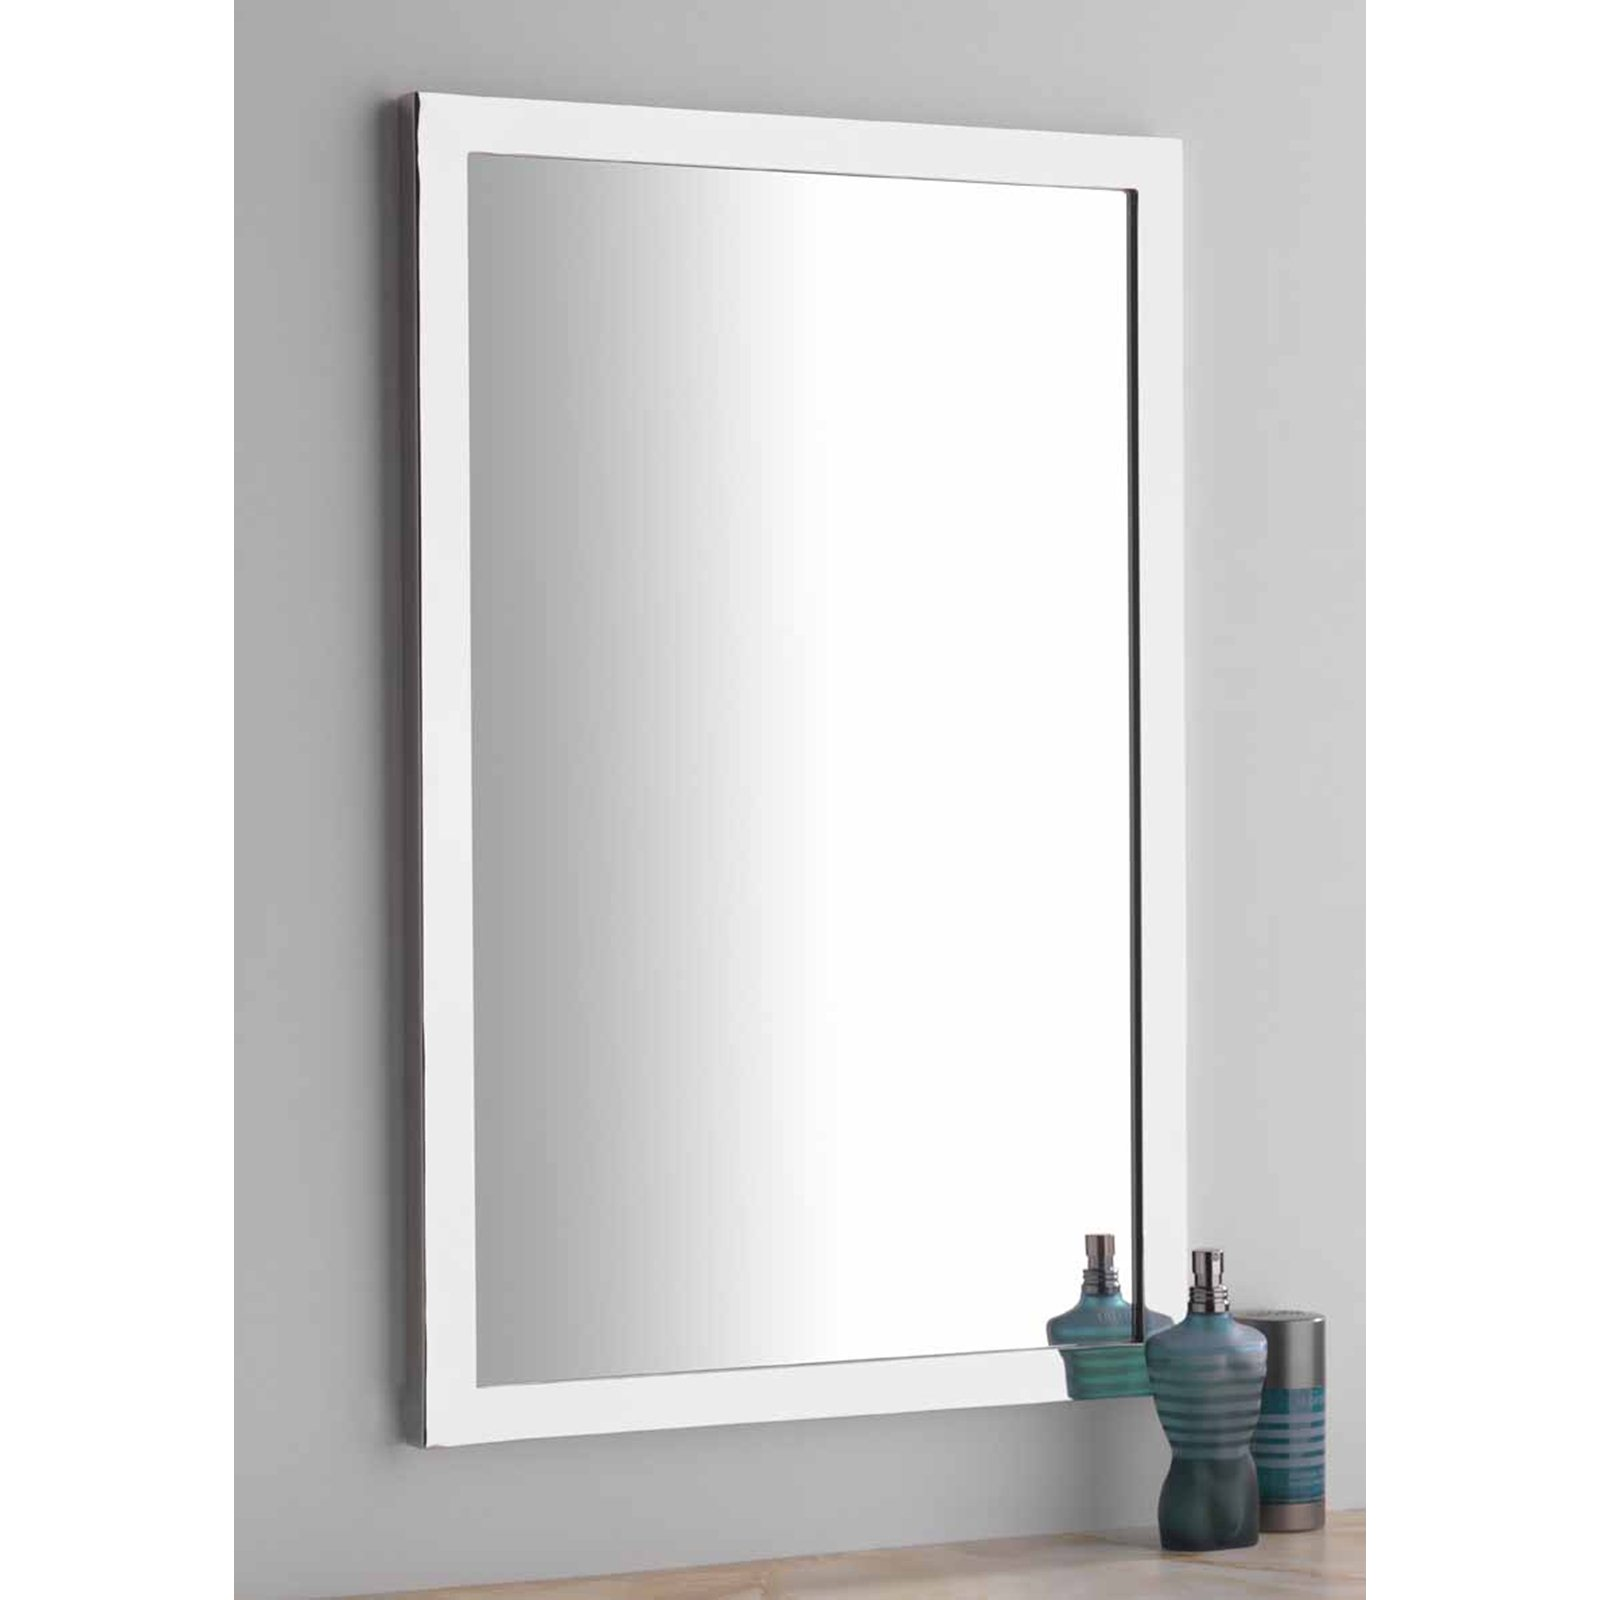 Handmade Rectangular Bathroom Mirror